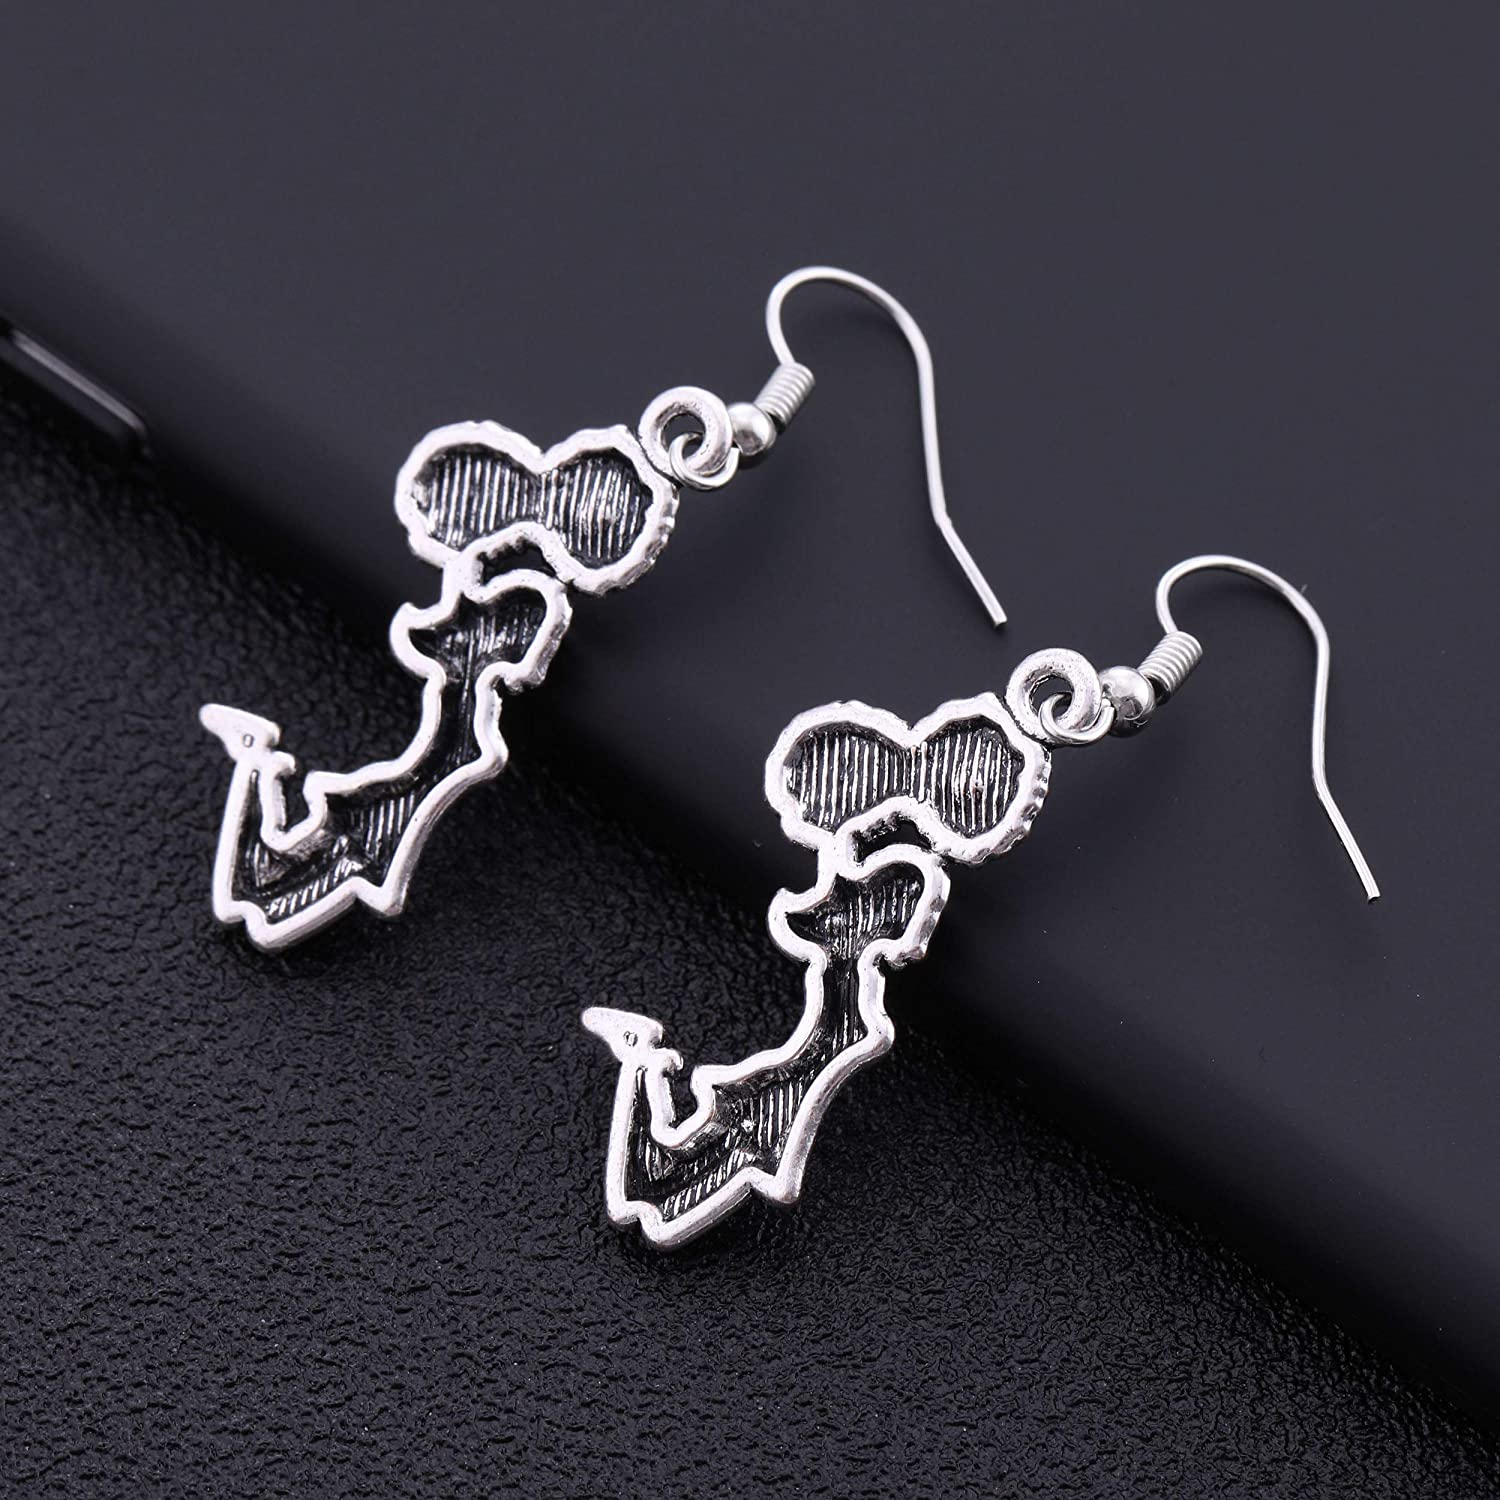 TEAMER Antique Silver Cheerleader Charm Dangle Earrings Cheering Girl Drop Earrings for Teens Girls